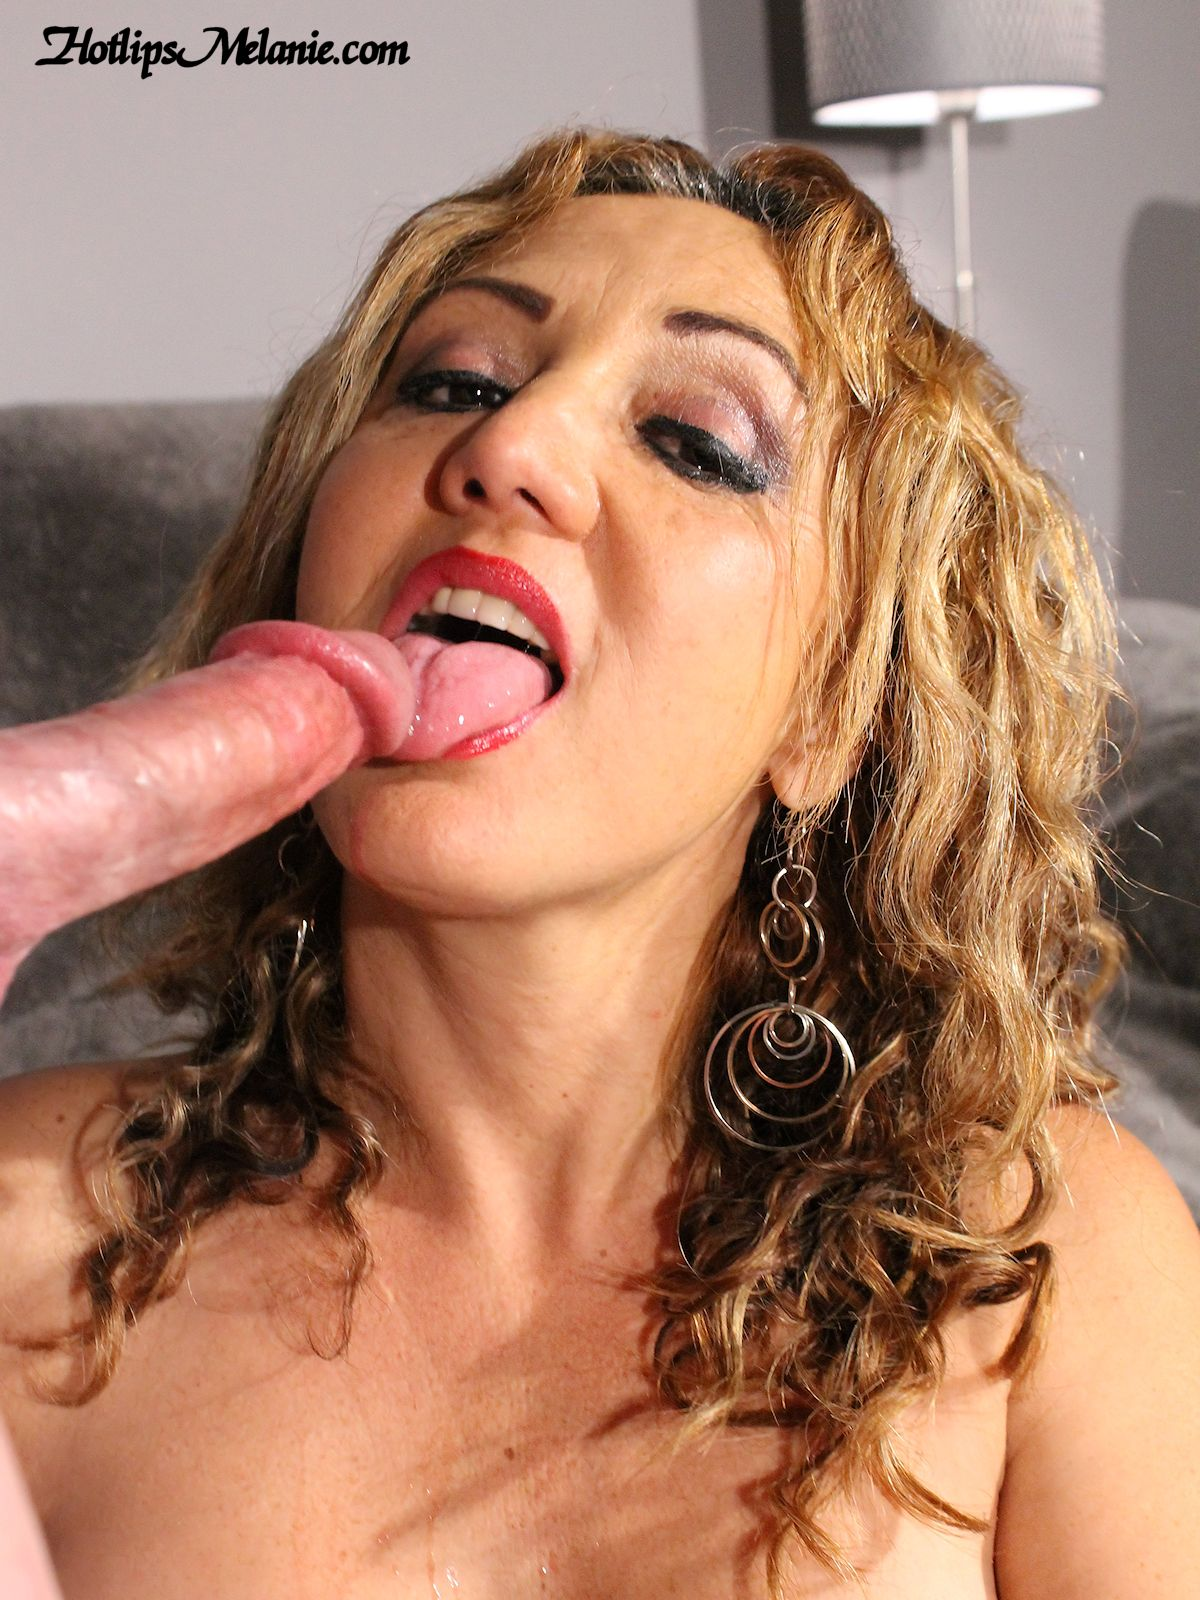 Hot Sexy Milf Sucking Cock 74